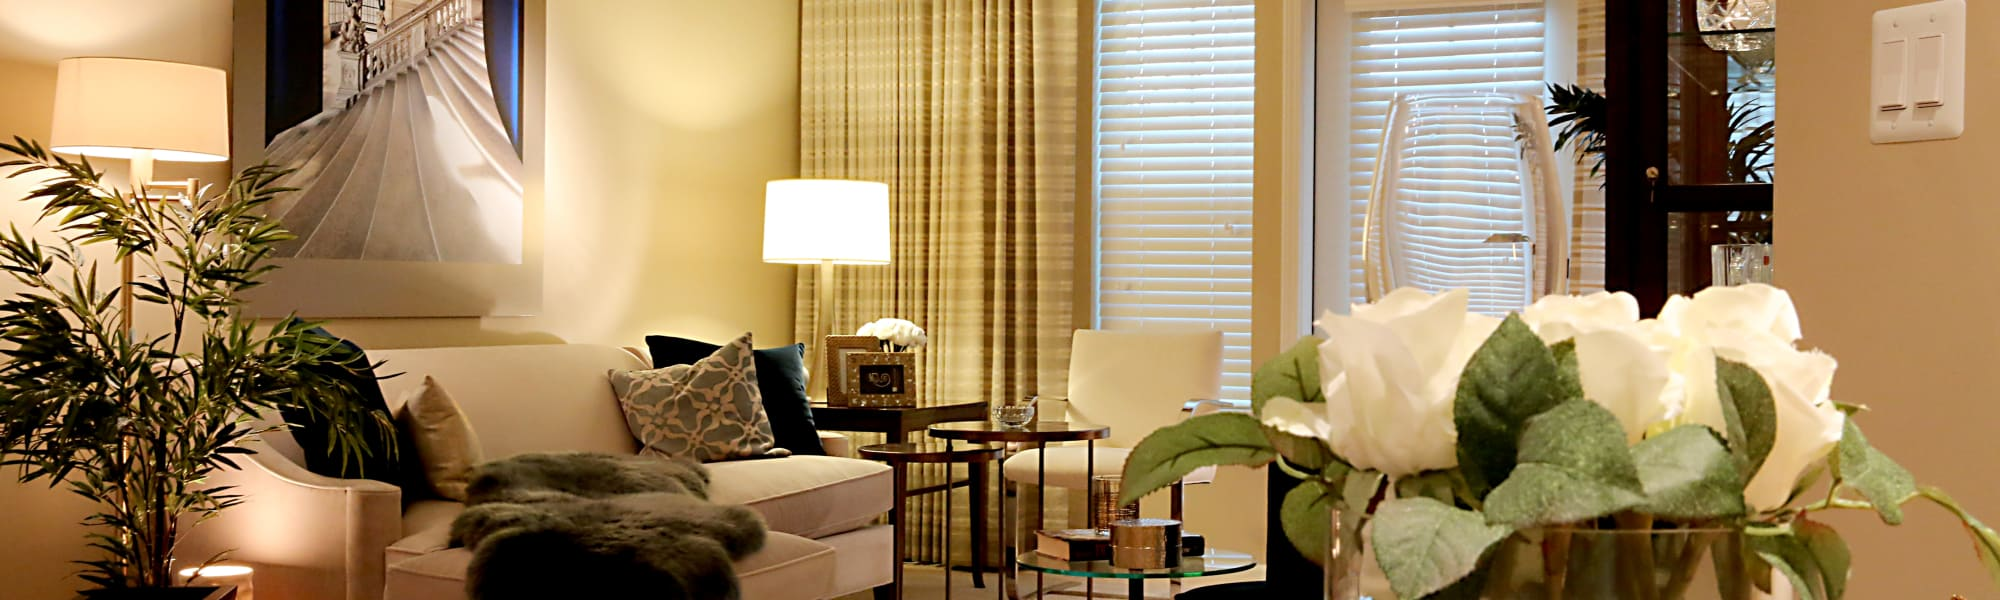 Living room example at All Seasons of Oro Valley in Oro Valley, AZ